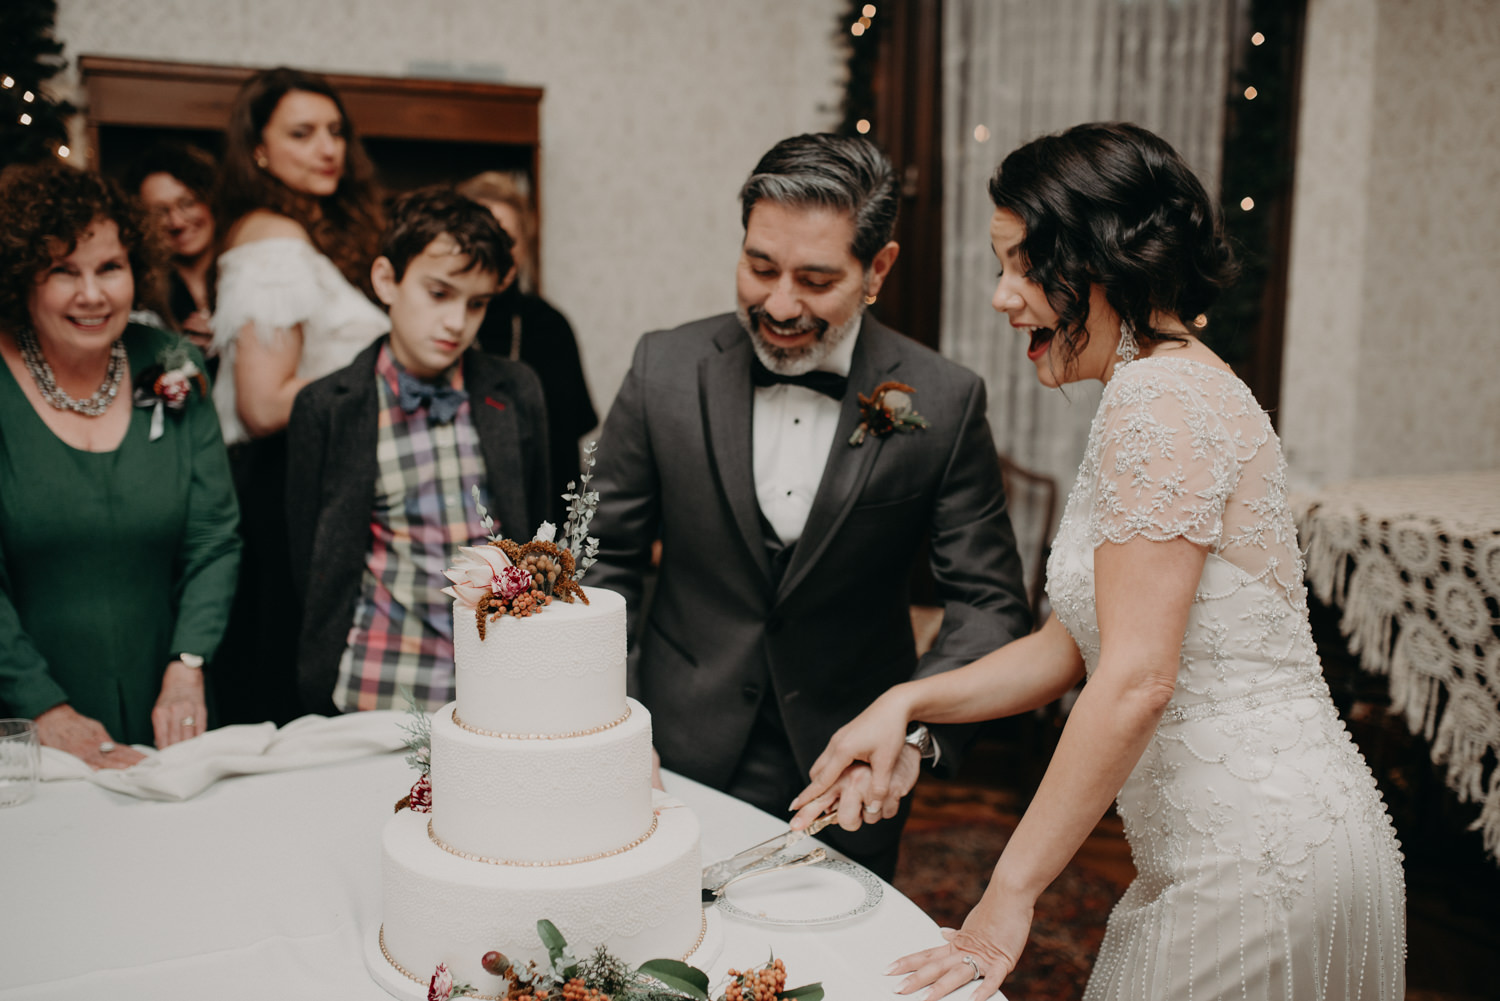 cutting the wedding cake at reception